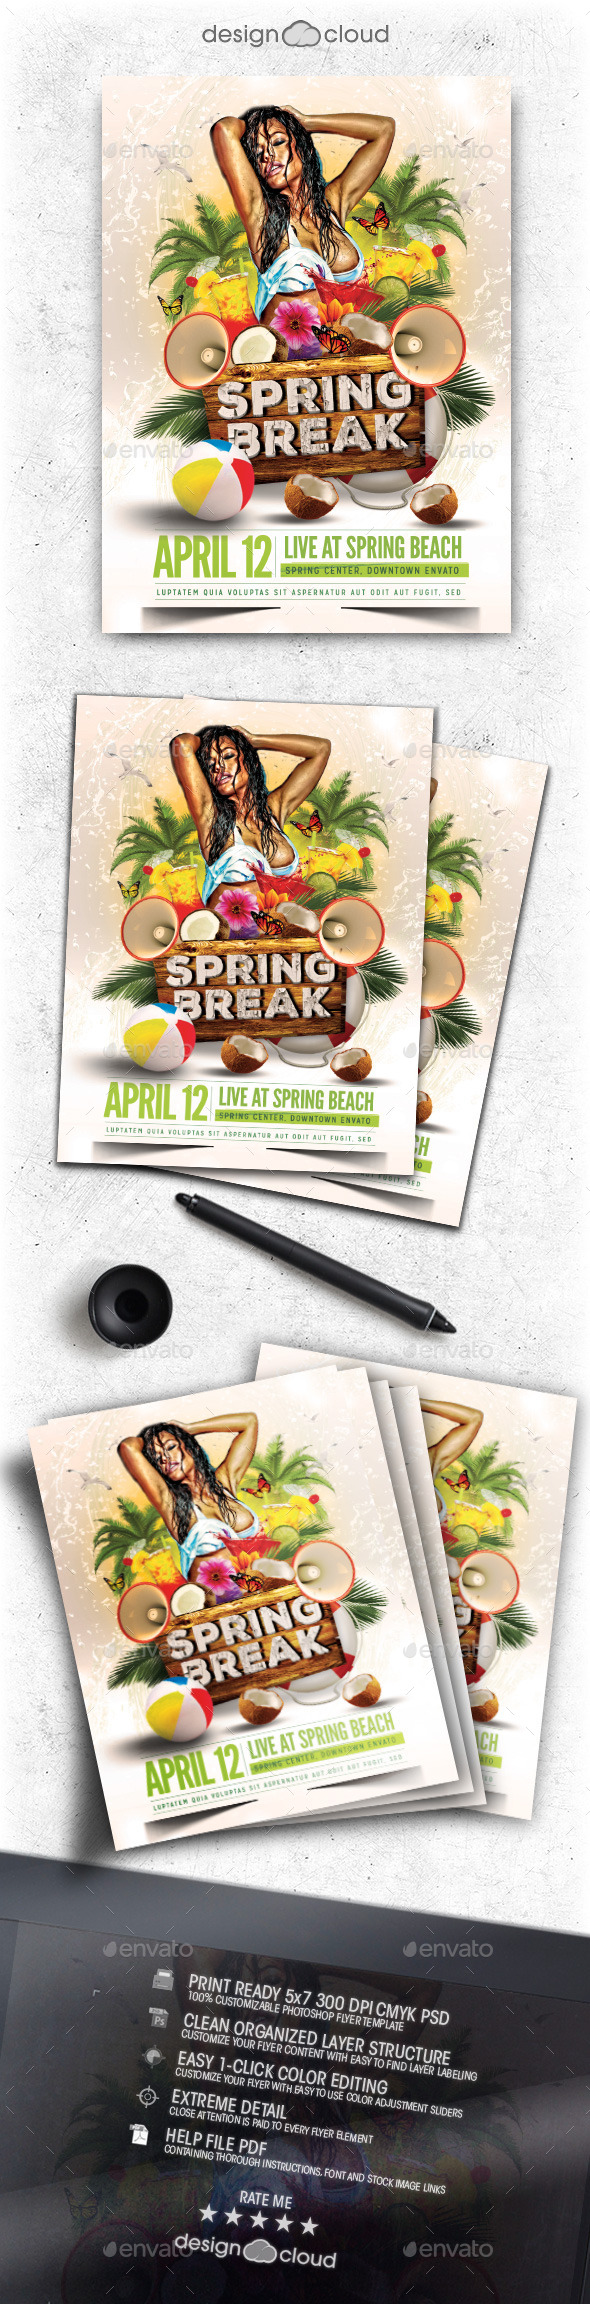 GraphicRiver Spring Break Flyer Template Vol 1 10390948